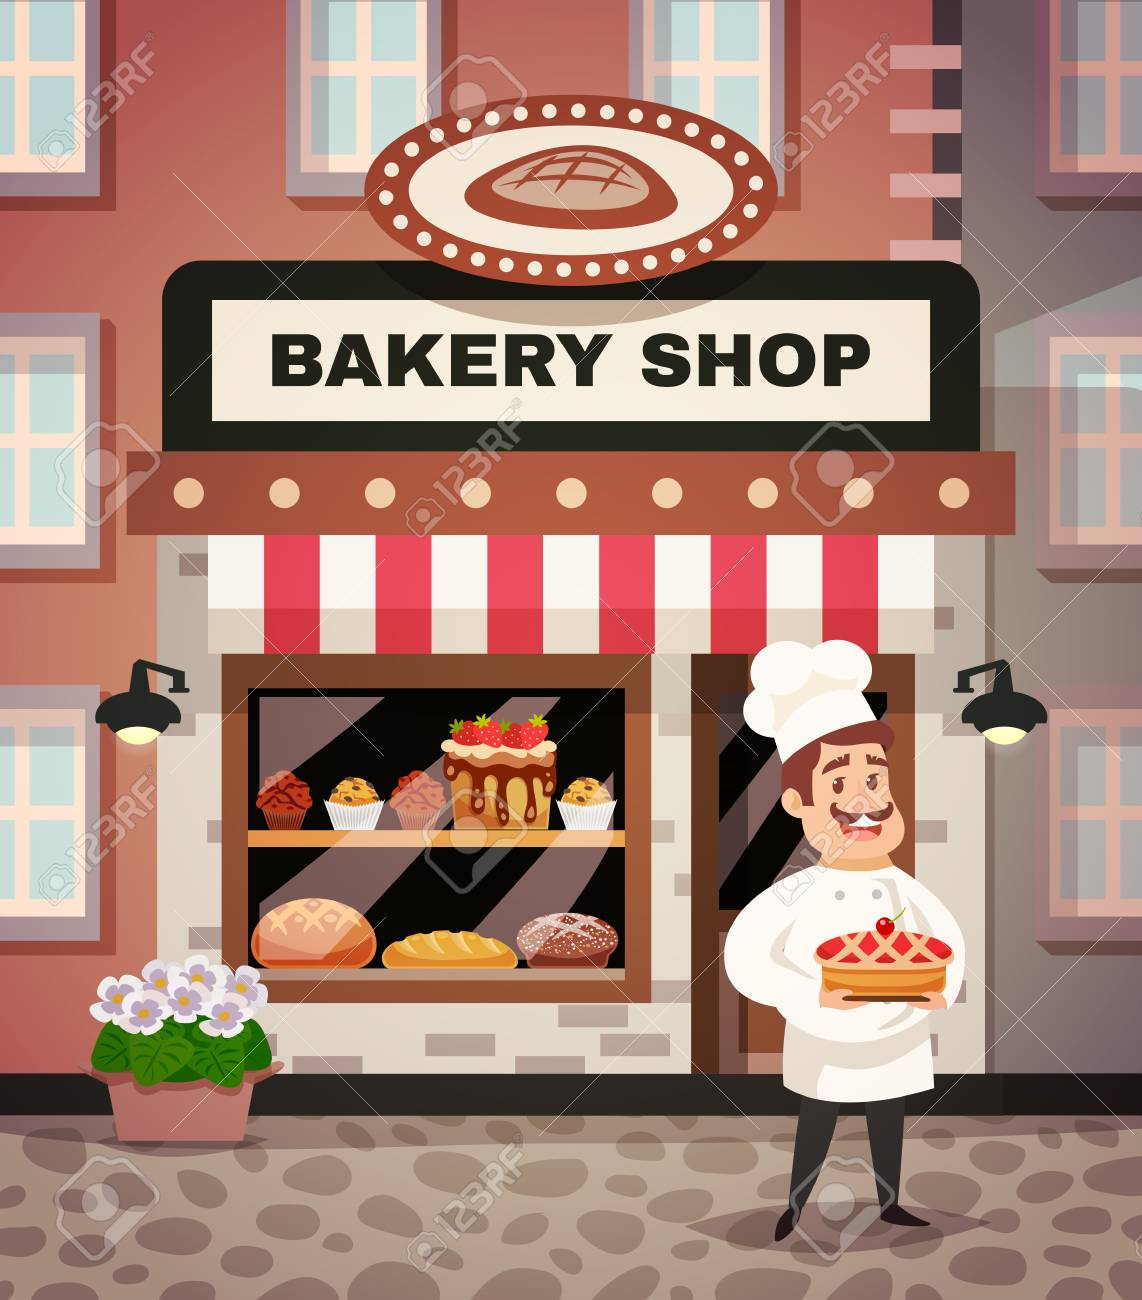 bakery shop design concept with chef in uniform standing in front rh 123rf com